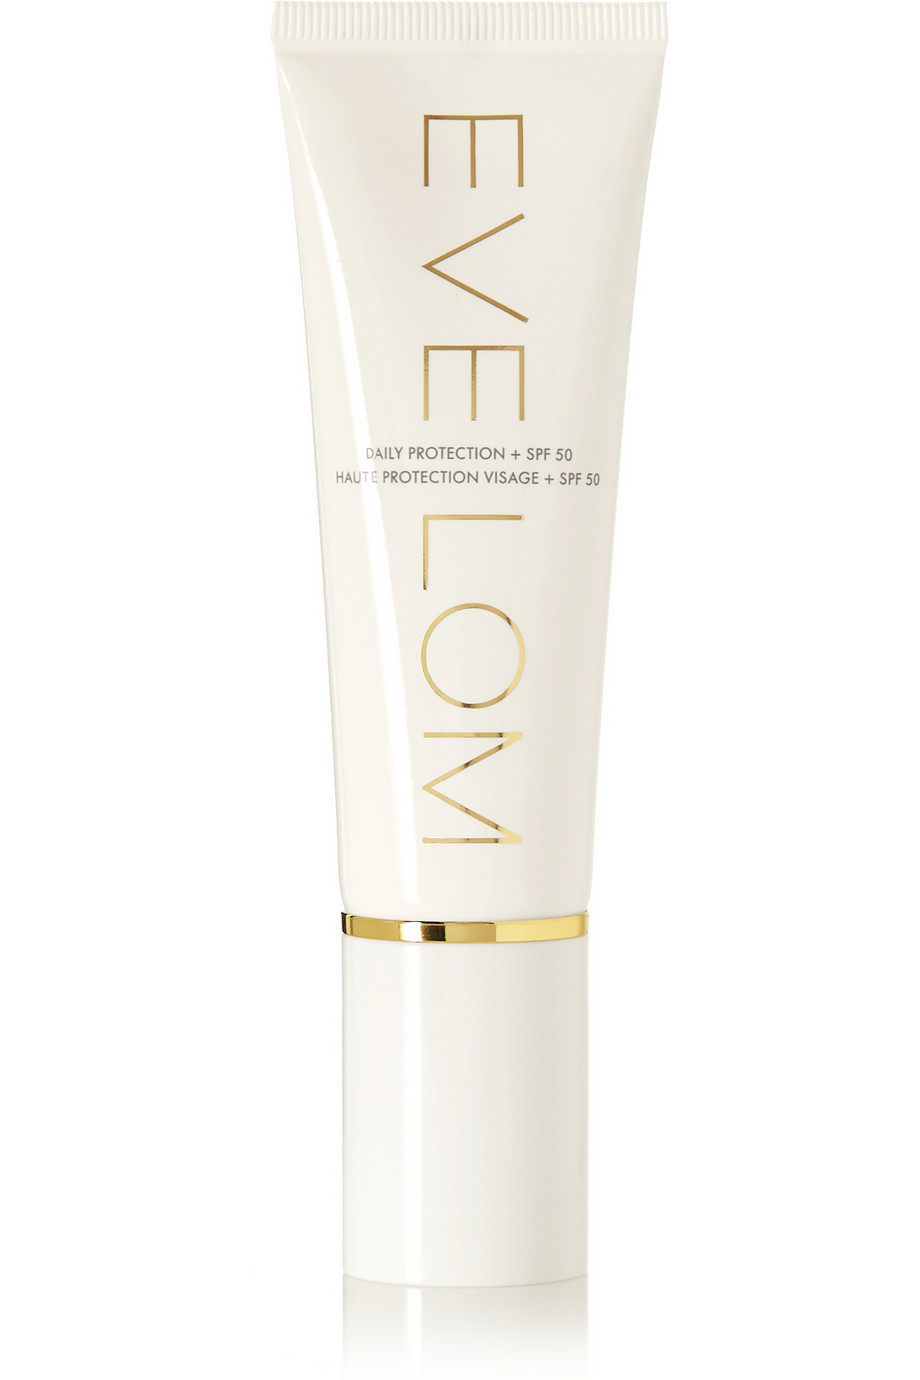 EVE LOM Daily Protection + SPF50, 50ml   サンブロック